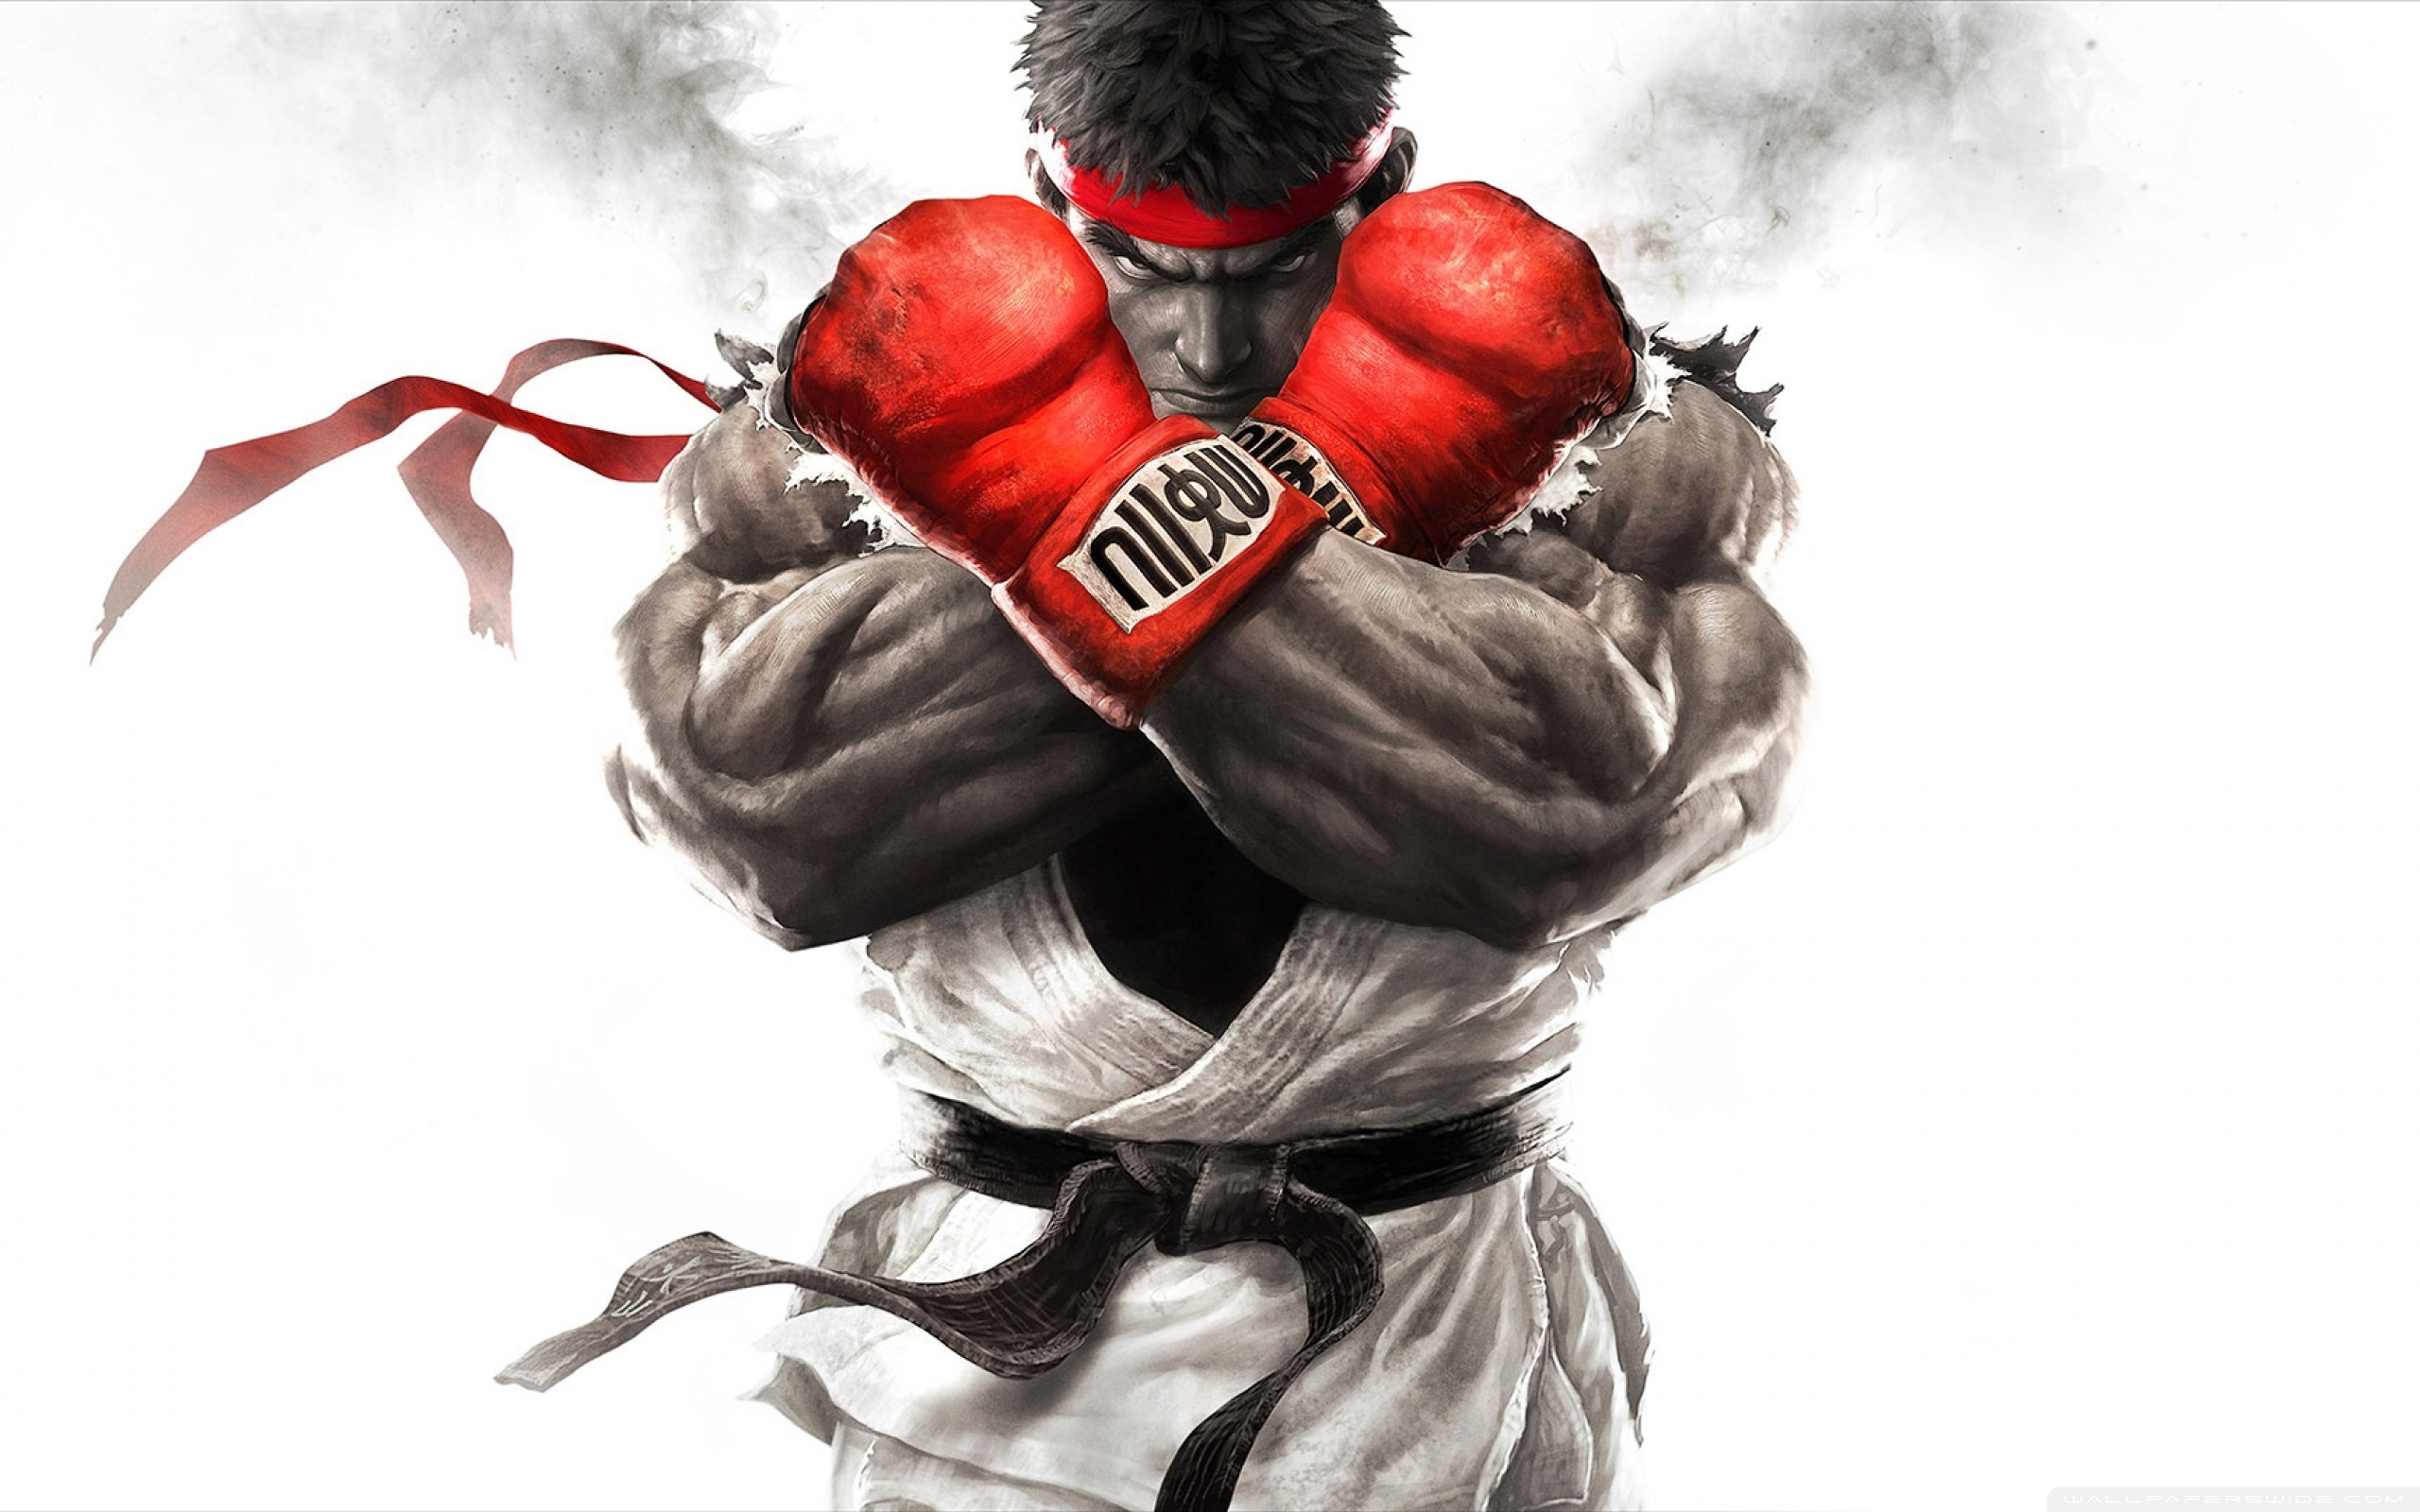 10 New Street Fighter Hd Wallpapers FULL HD 1920×1080 For PC Background